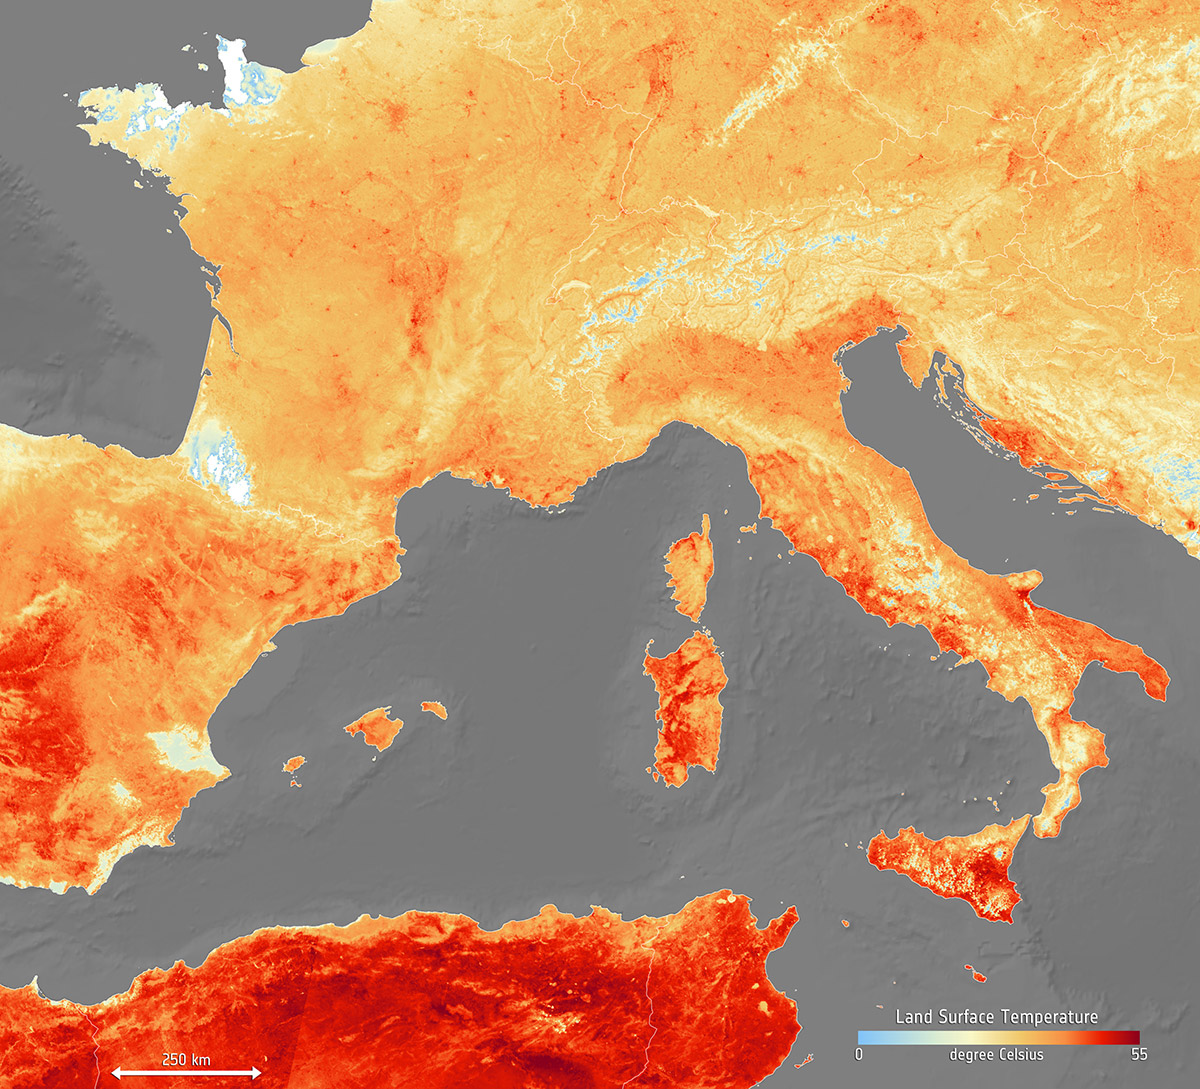 European heatwave land temperatures on 26 June 2019